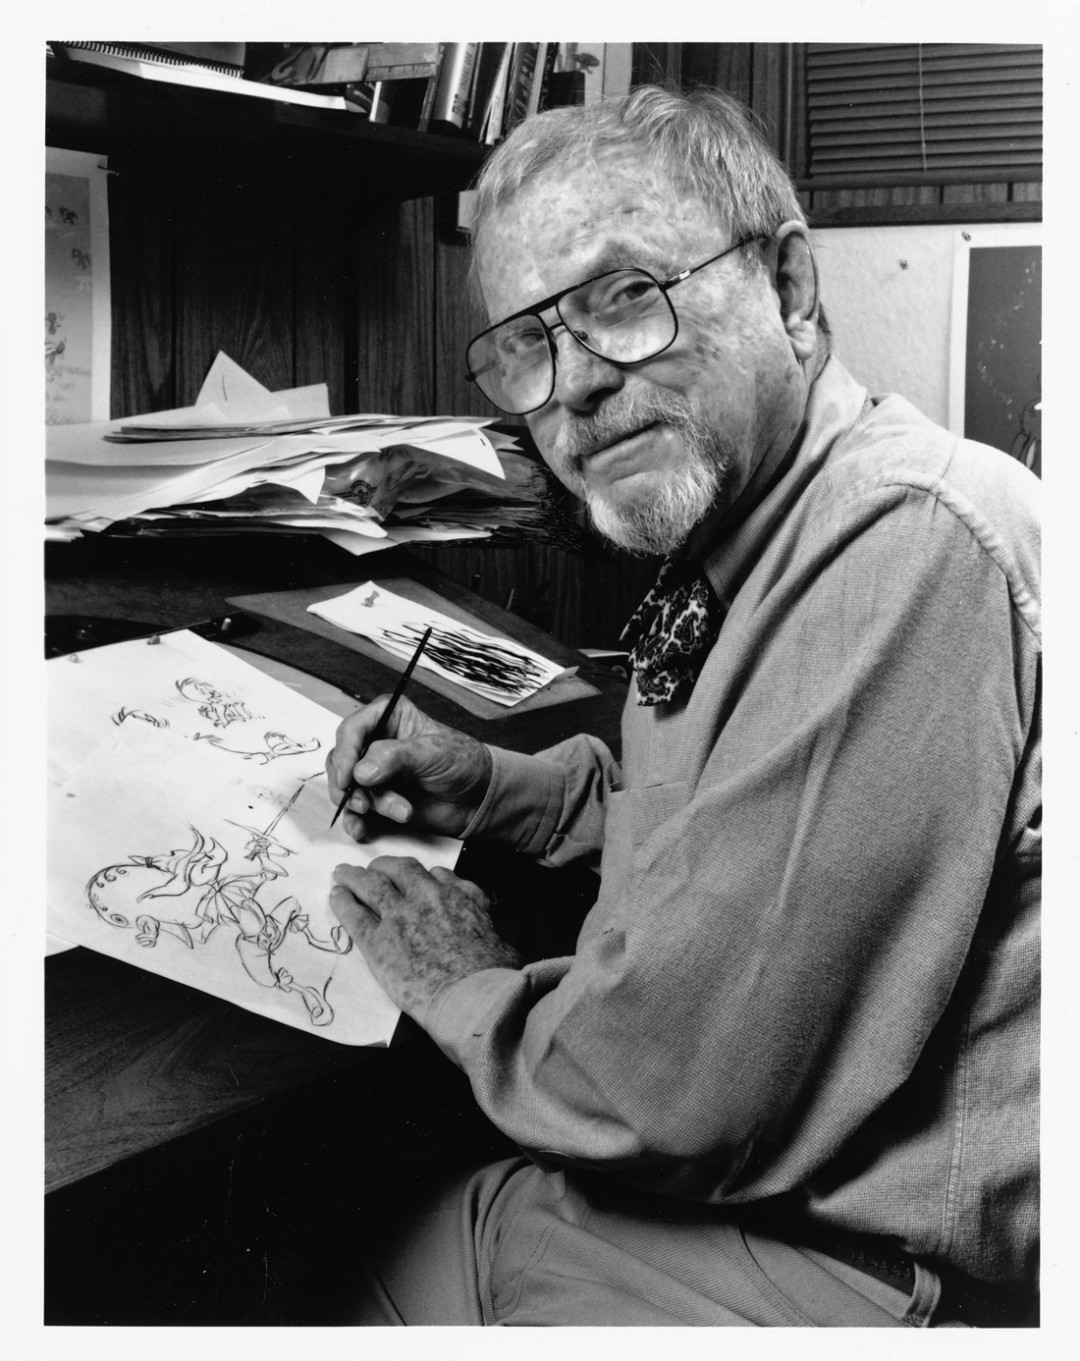 Chuck jones courtesy of the chuck jones center for creativity xgvu98